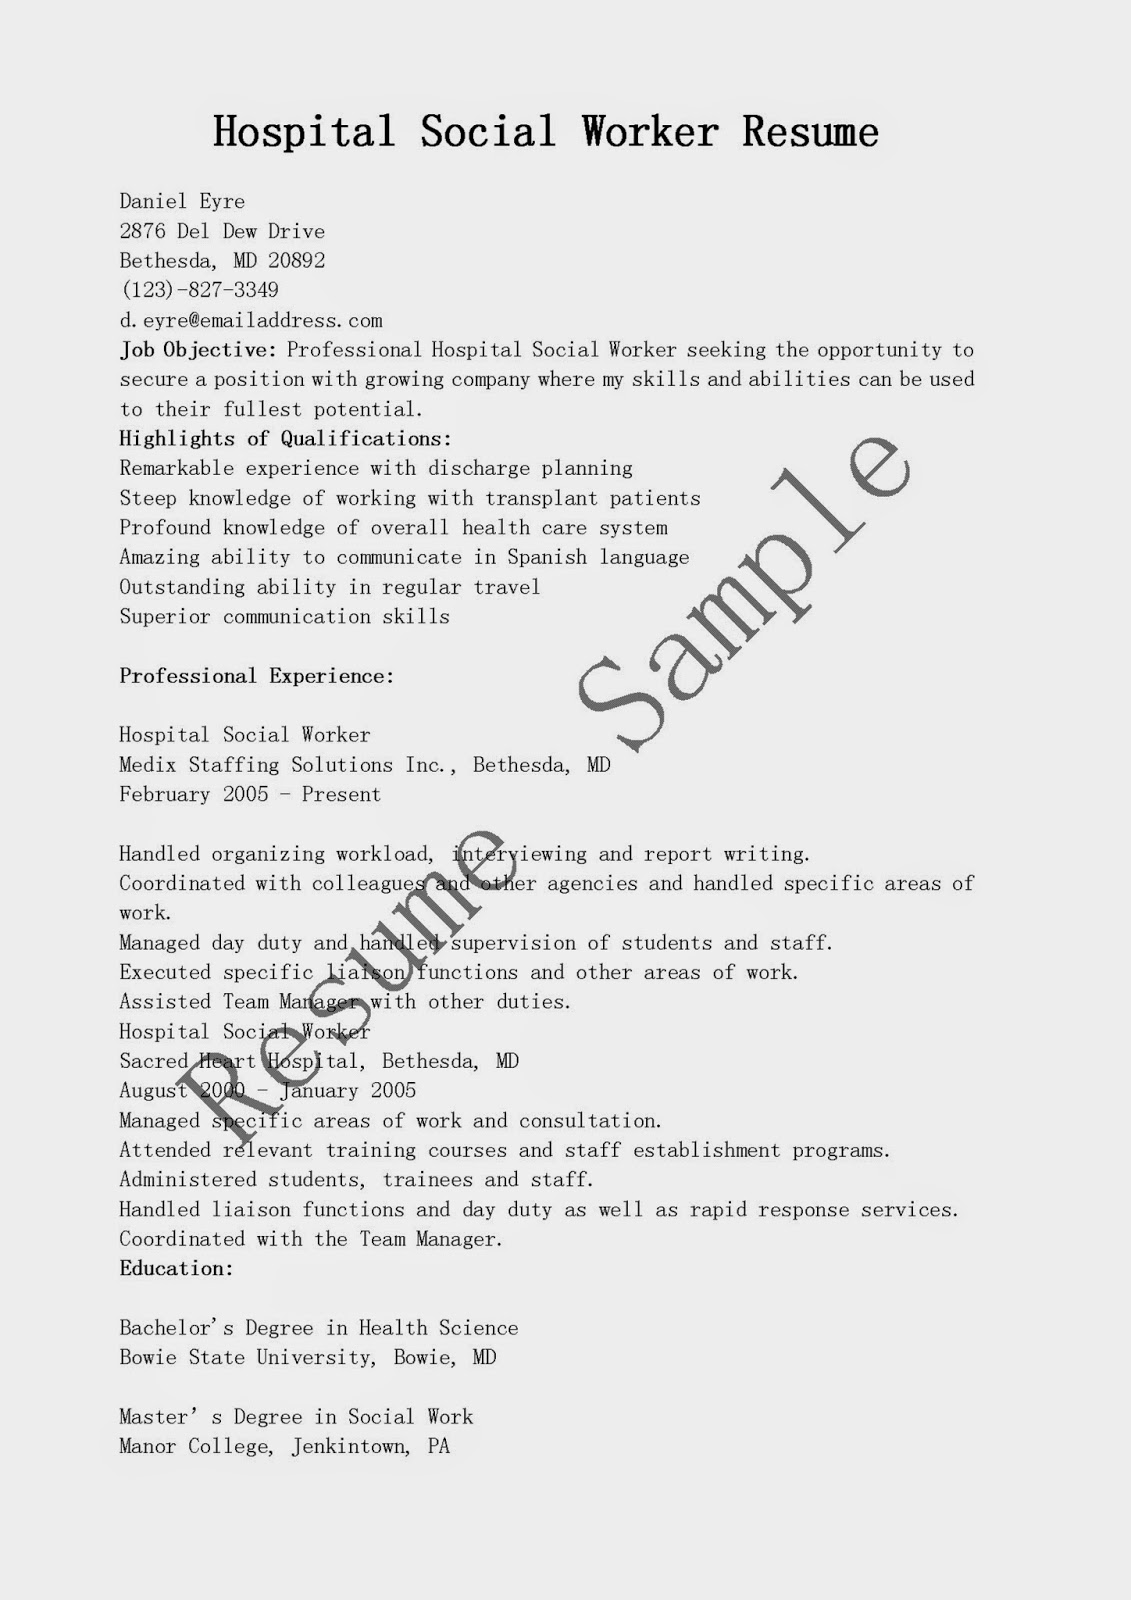 Human Services Cover Letter Human Services Cover Letter Sample My Shopgrat Cover  Letter For Social Work  Sample Resume Cover Letter